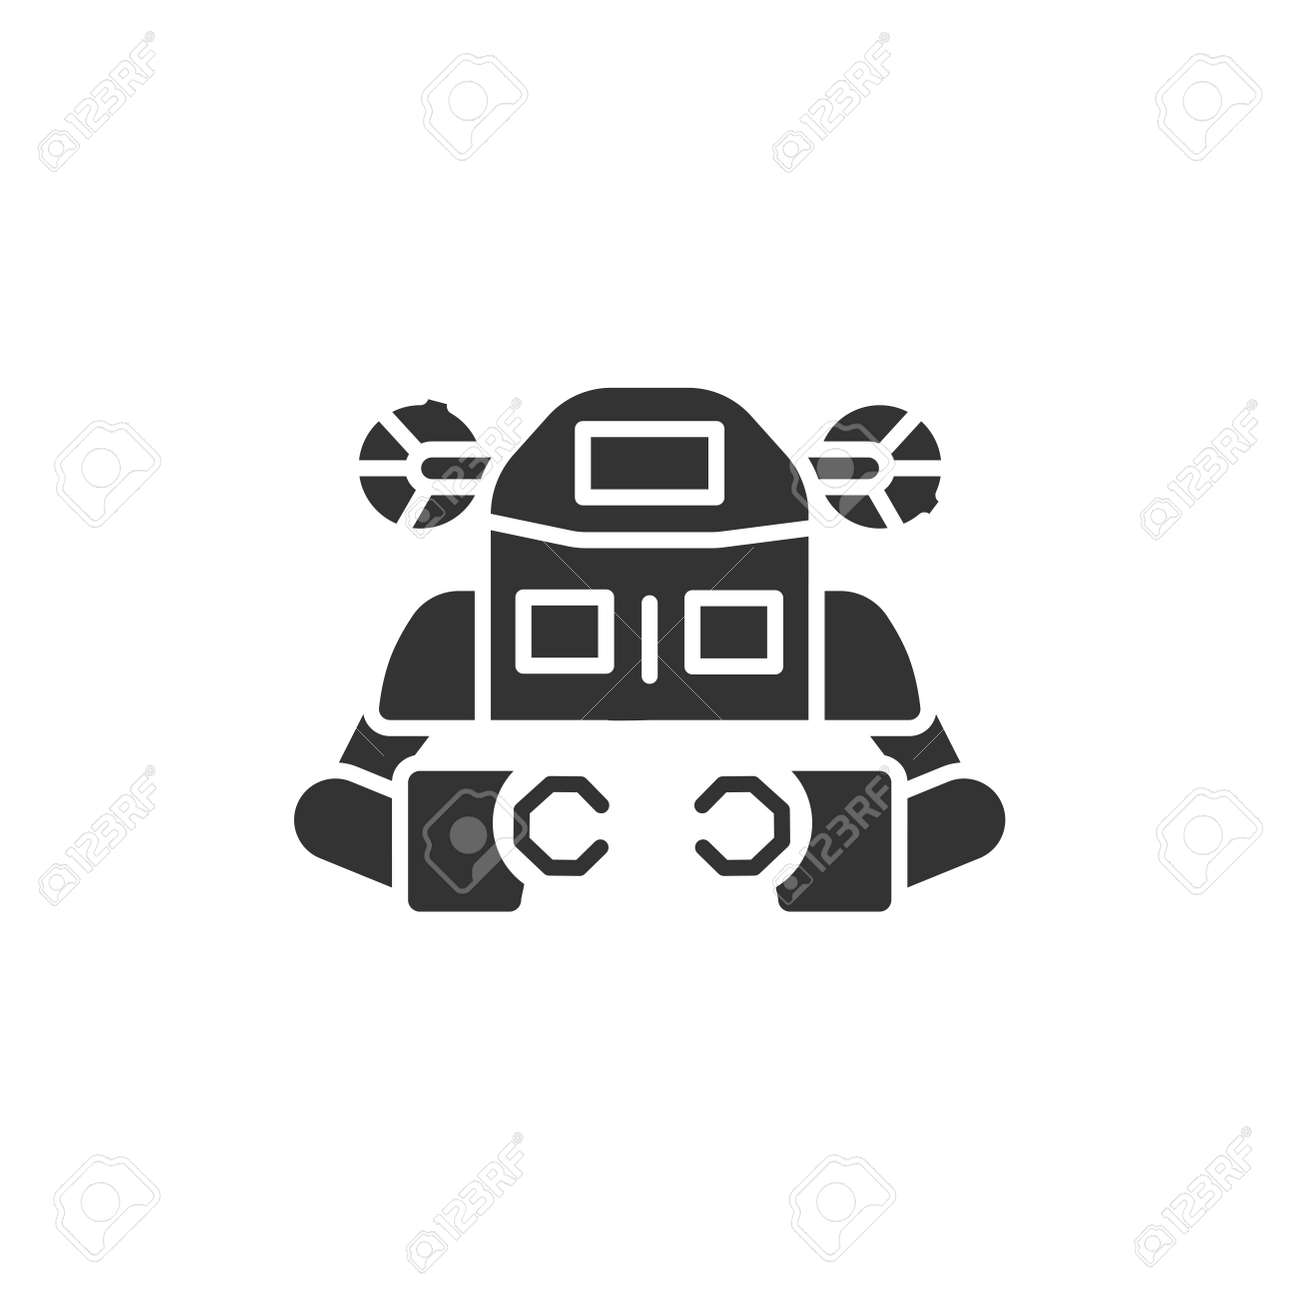 Underwater robot black glyph icon. Aquanaut, an autonomous electric submarine. Innovation in technology. Sign for web page, app. UI UX GUI design element - 151313639